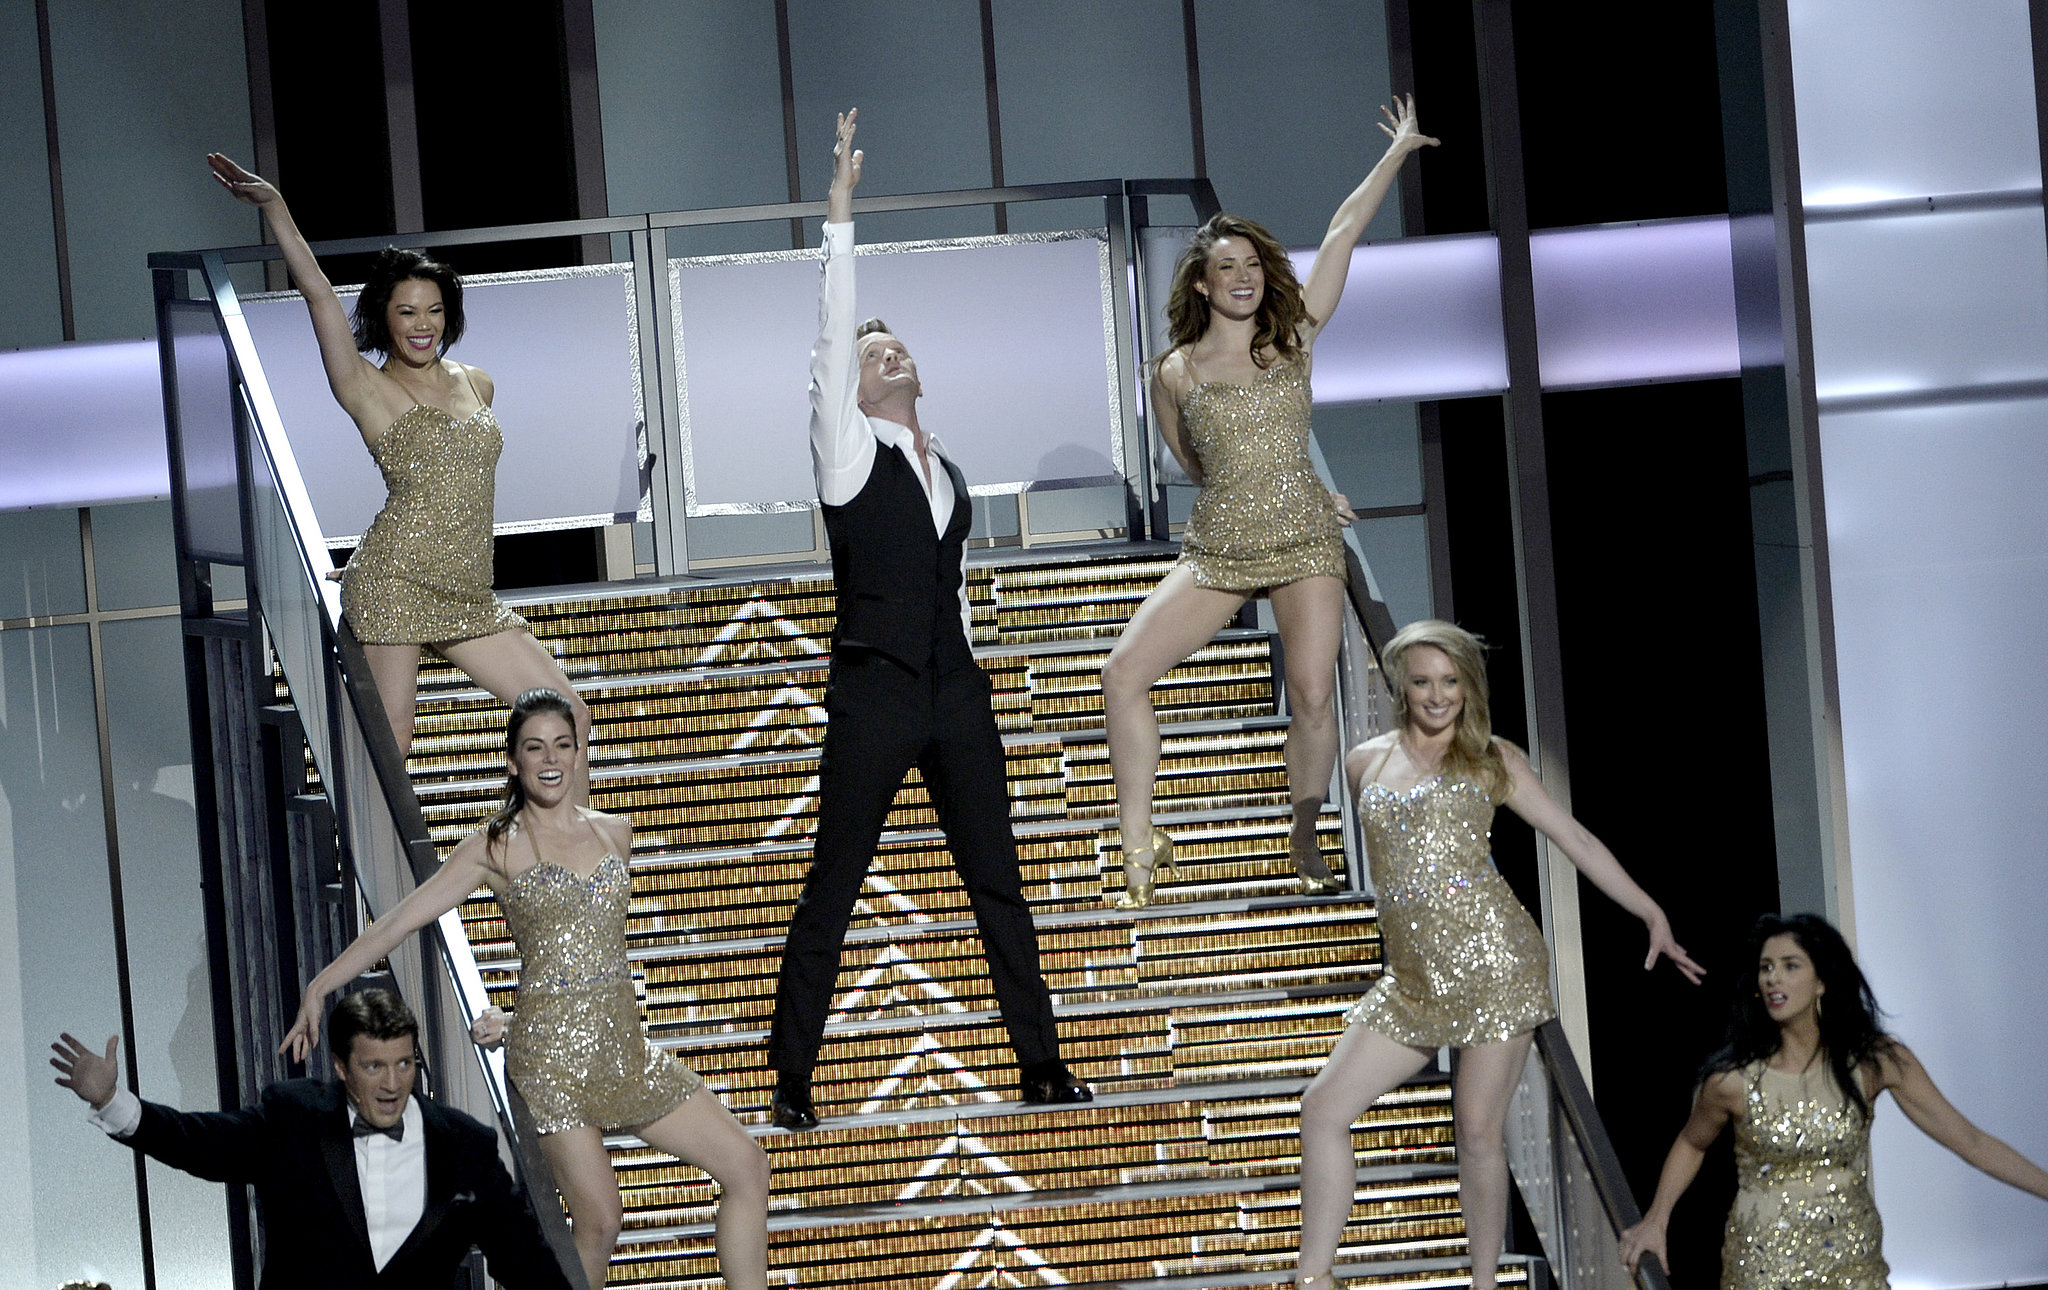 Neil Patrick Harris performed during the Emmys.